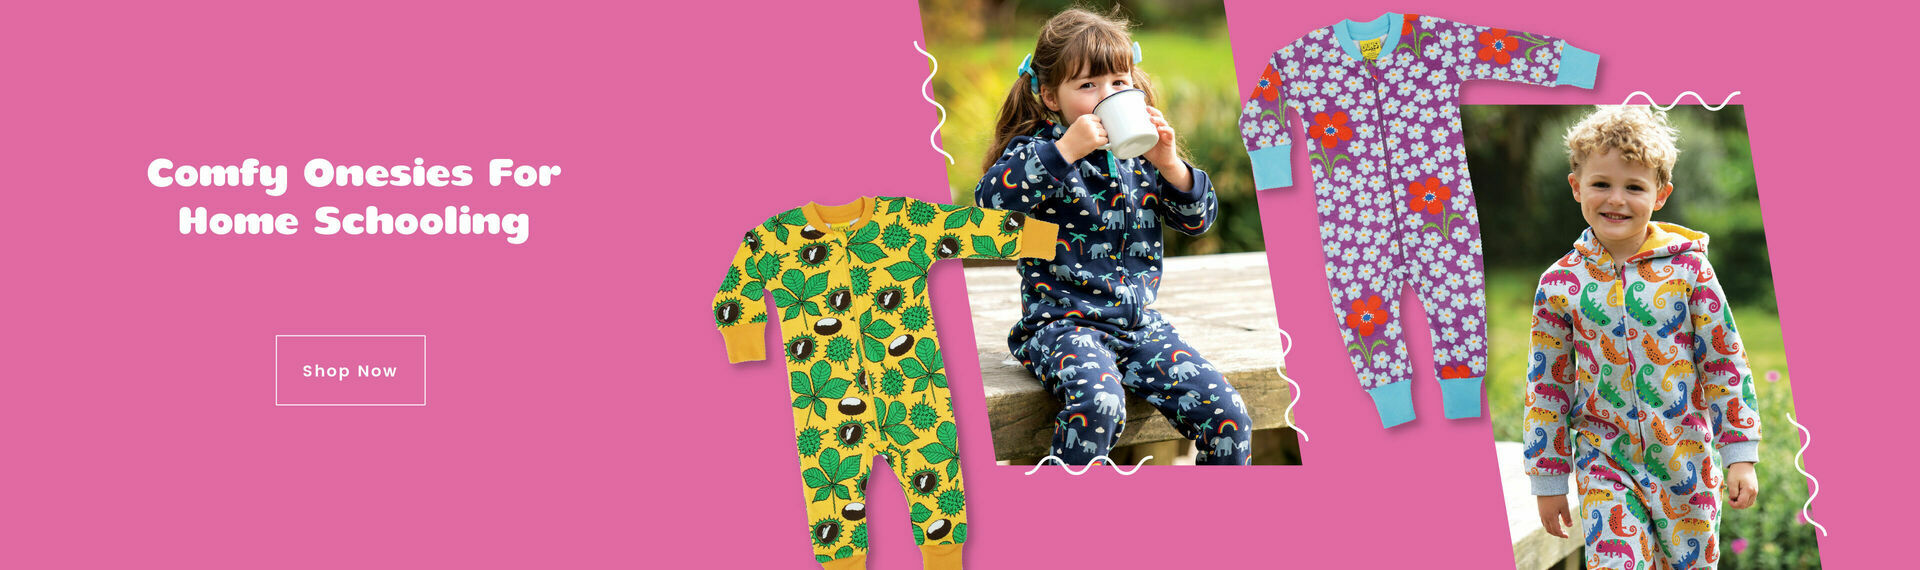 Comfy Onesies For Home Schooling